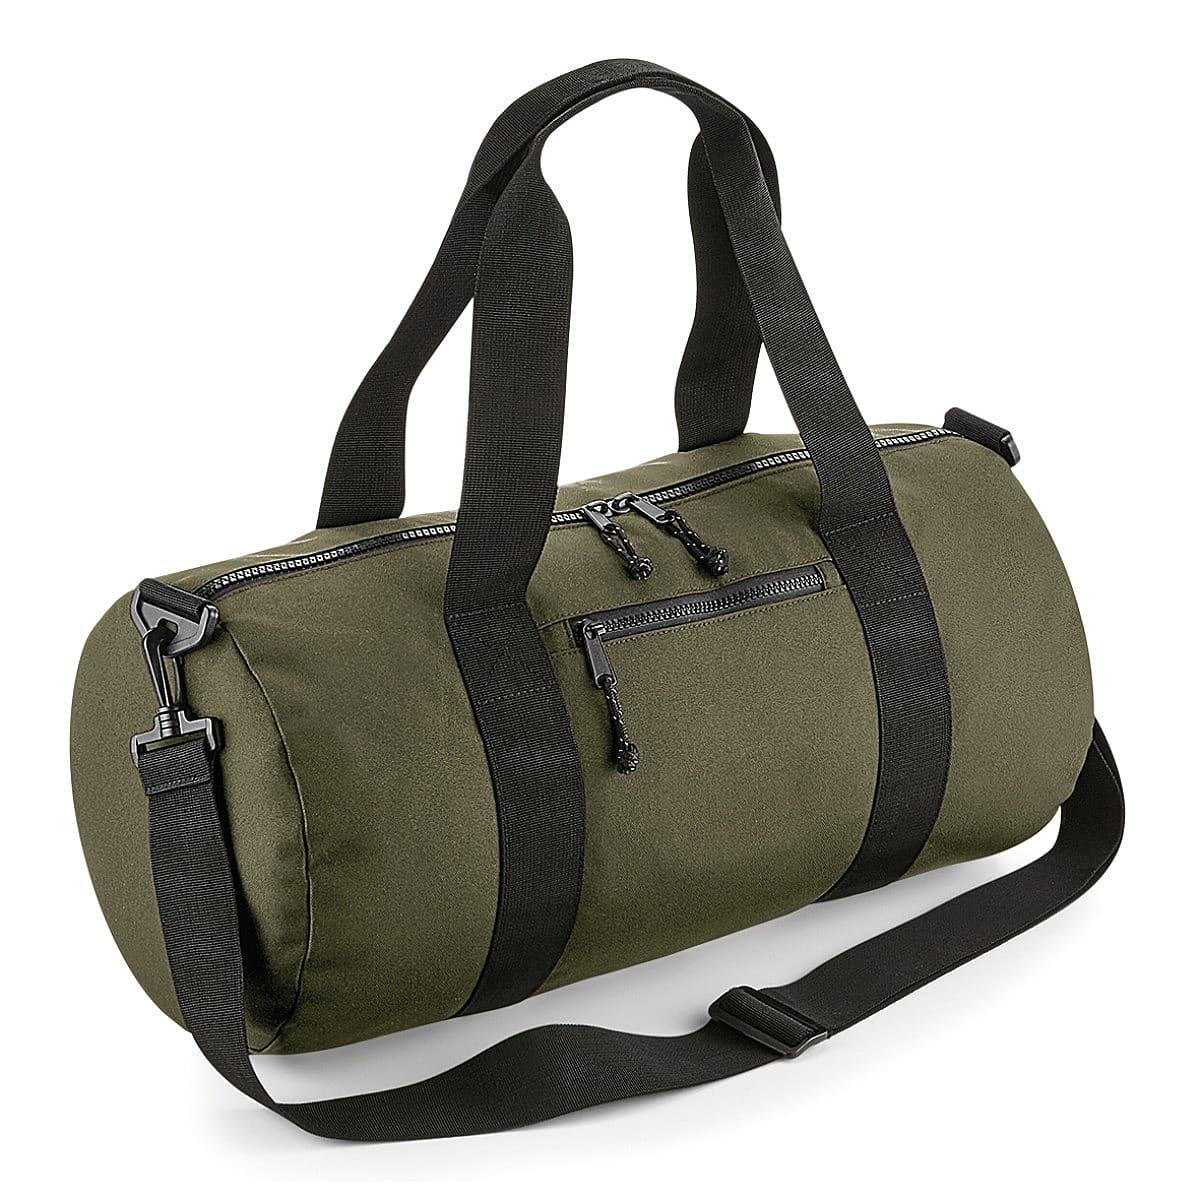 Bagbase Recycled Barrel Bag in Military Green (Product Code: BG284)